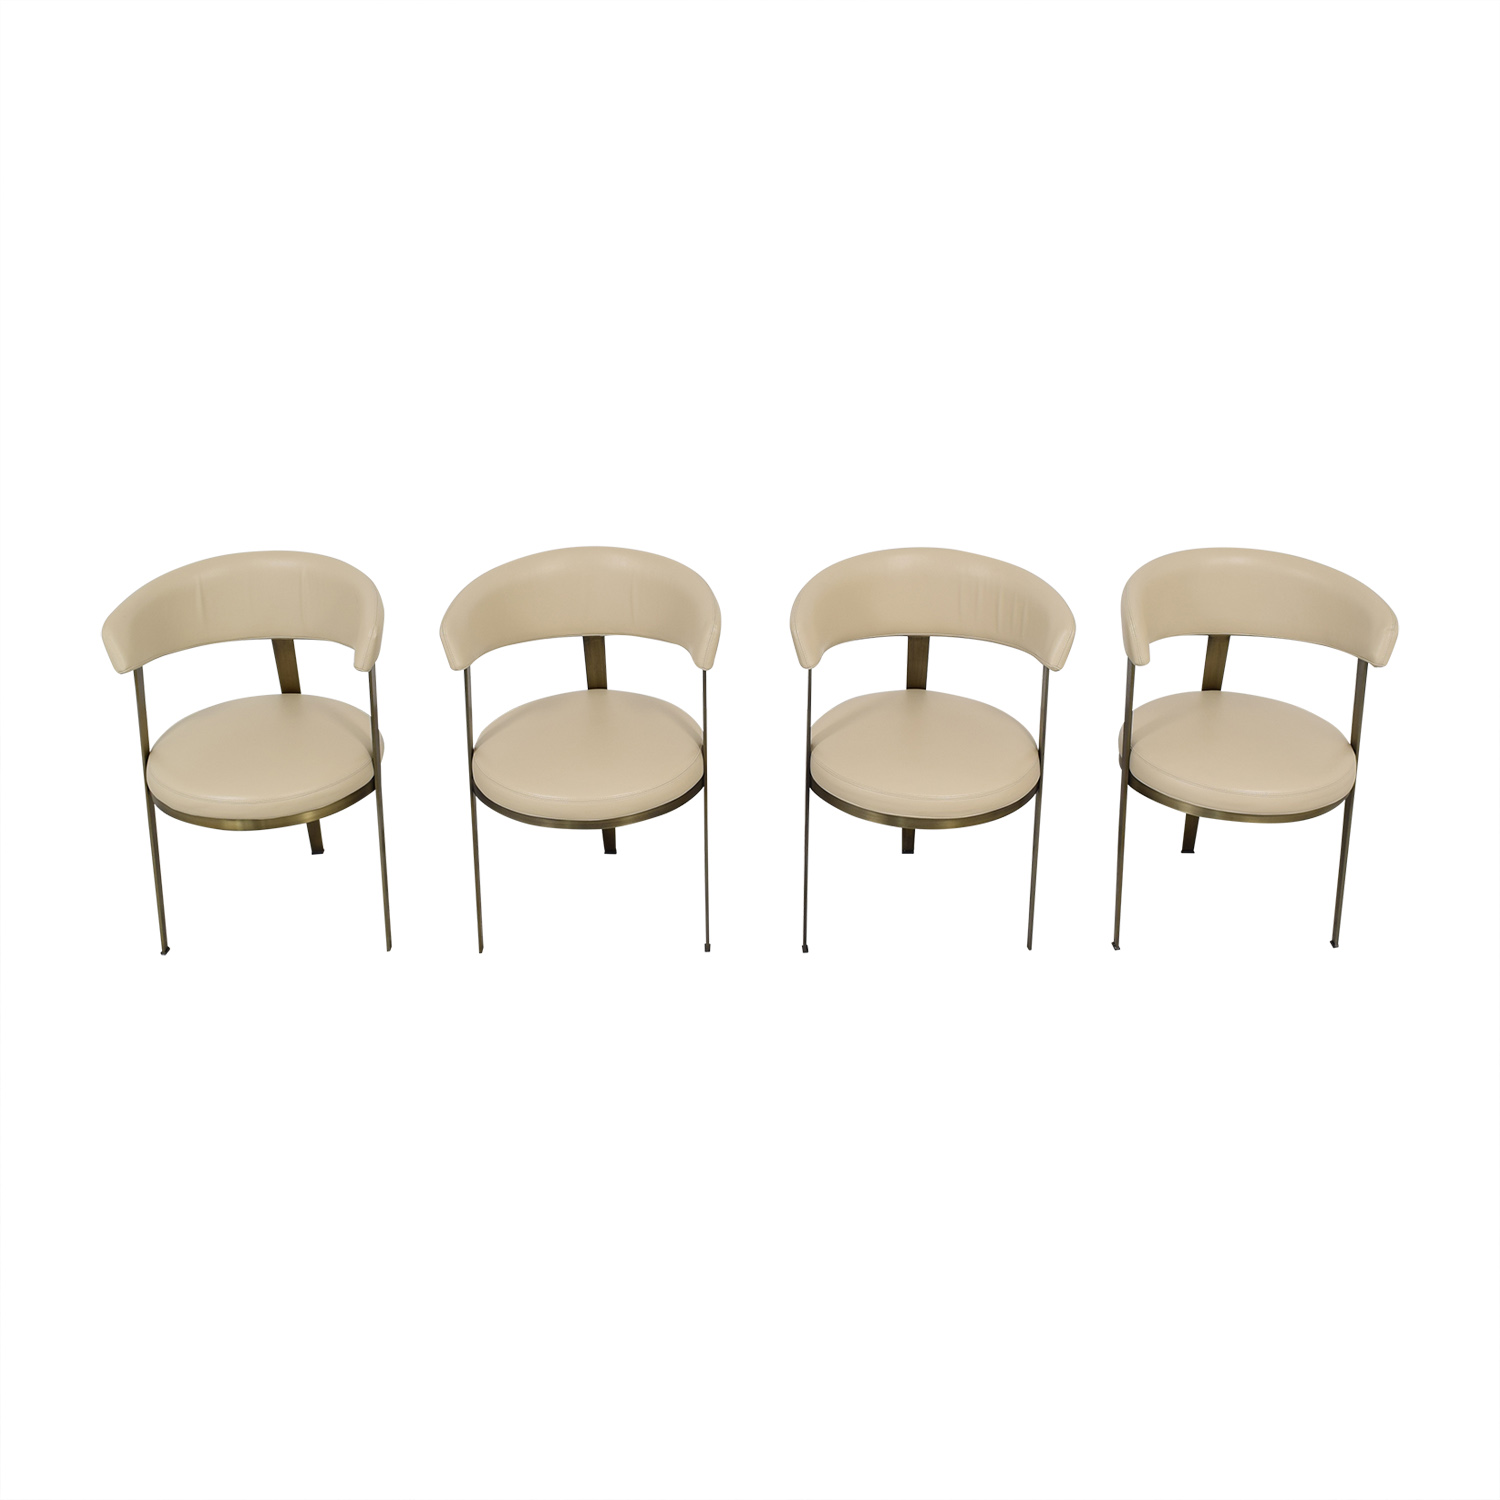 Interlude Home Interlude Home Dining Chairs nyc